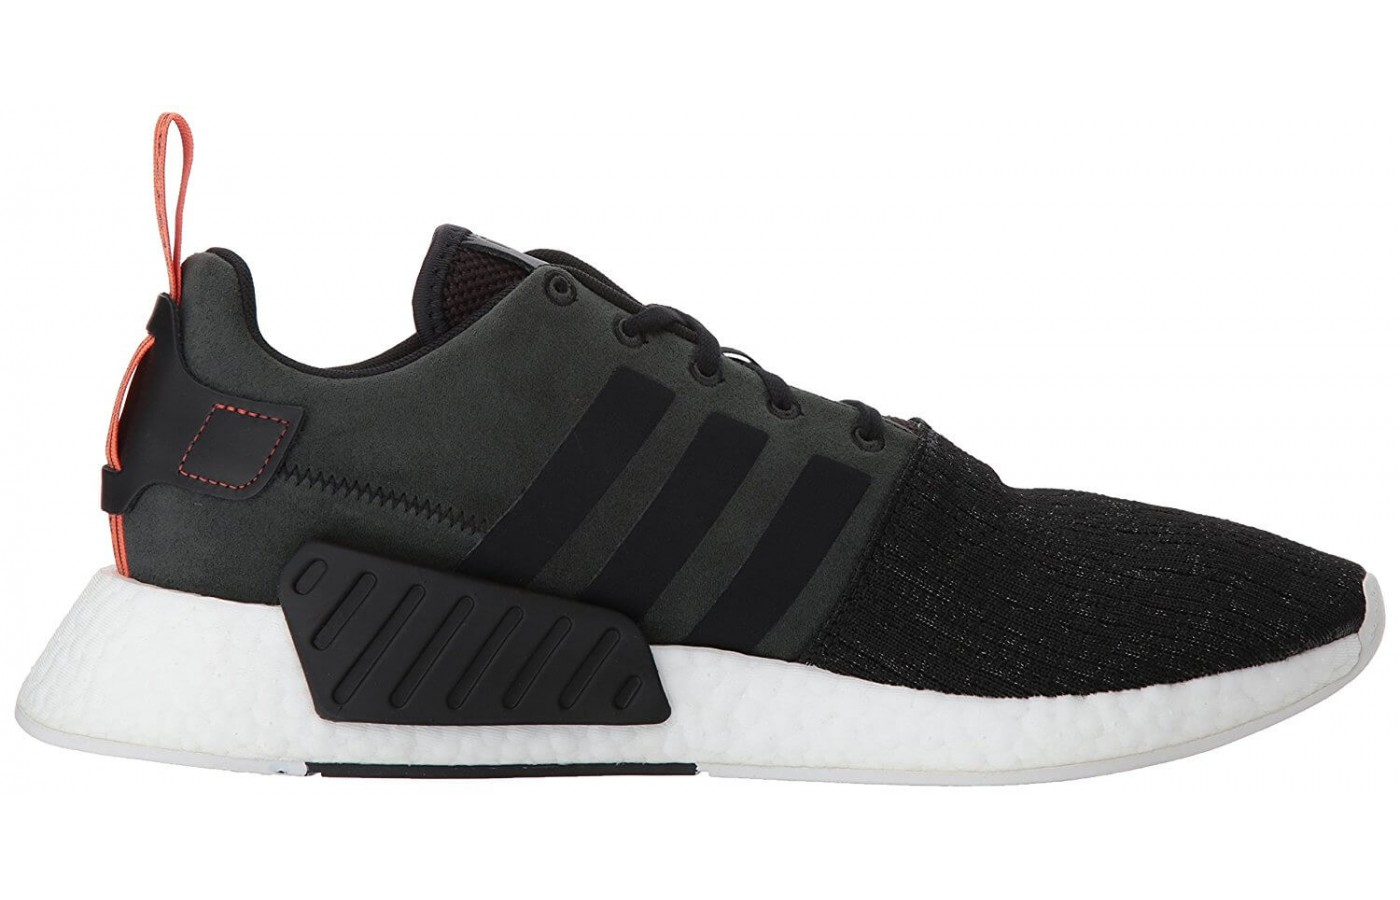 low priced 9439a aeda7 Adidas NMD R2 Reviewed for Performance and Quality